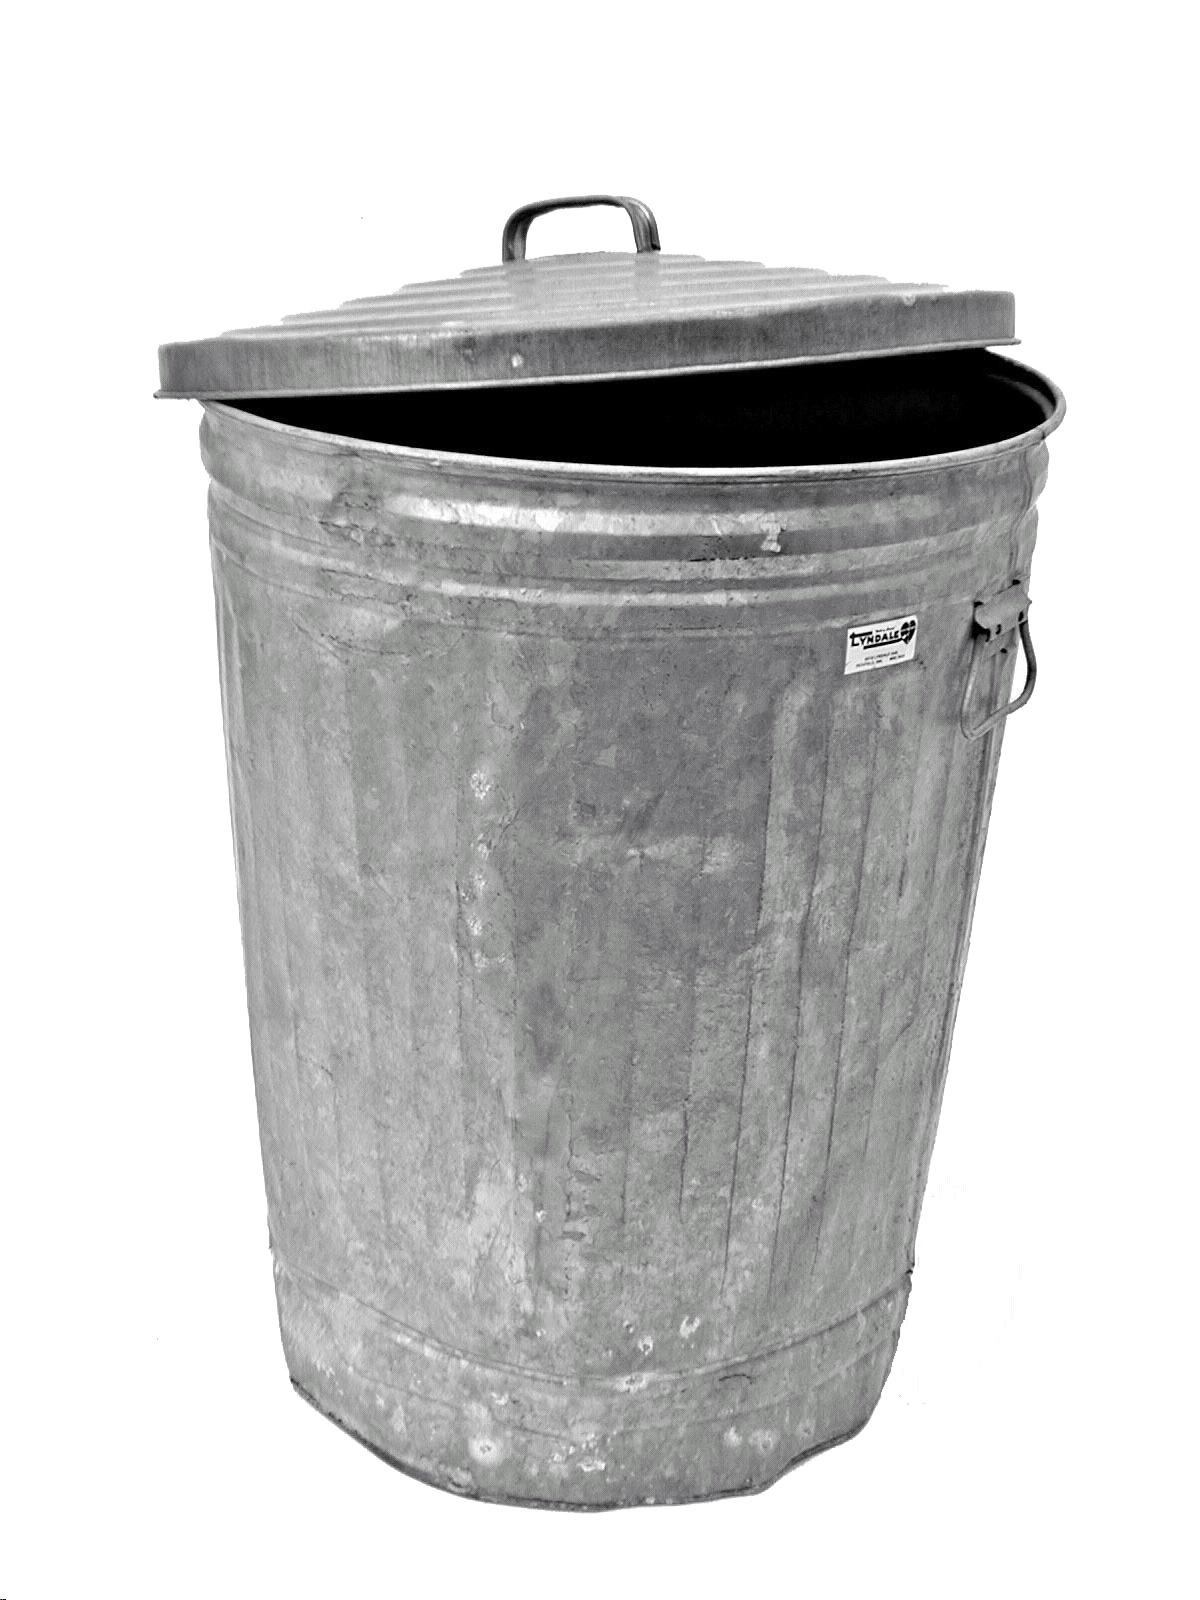 Trash can png. Transparent images all free